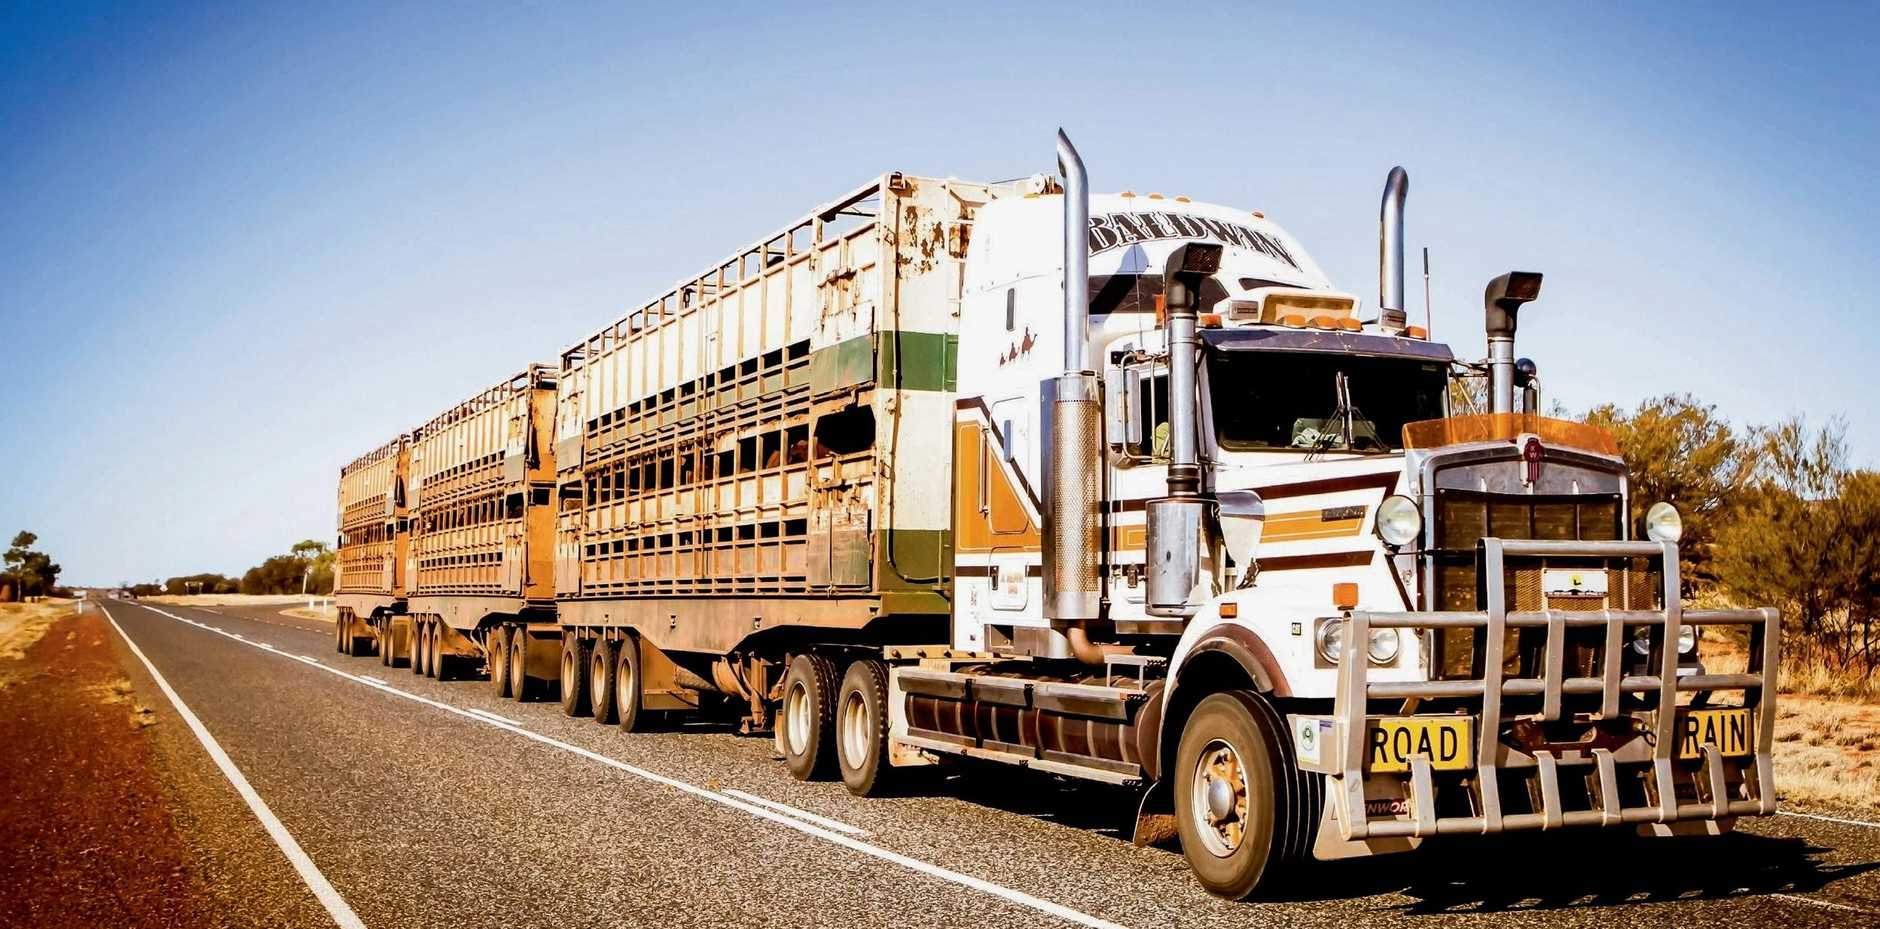 BEEF ROAD UPGRADE: Type 1 road trains access to 29 kilometres of road across the Capricorn Highway, Bruce Highway, Rockhampton-Yeppoon Road and the Rockhampton-Emu Park Road.